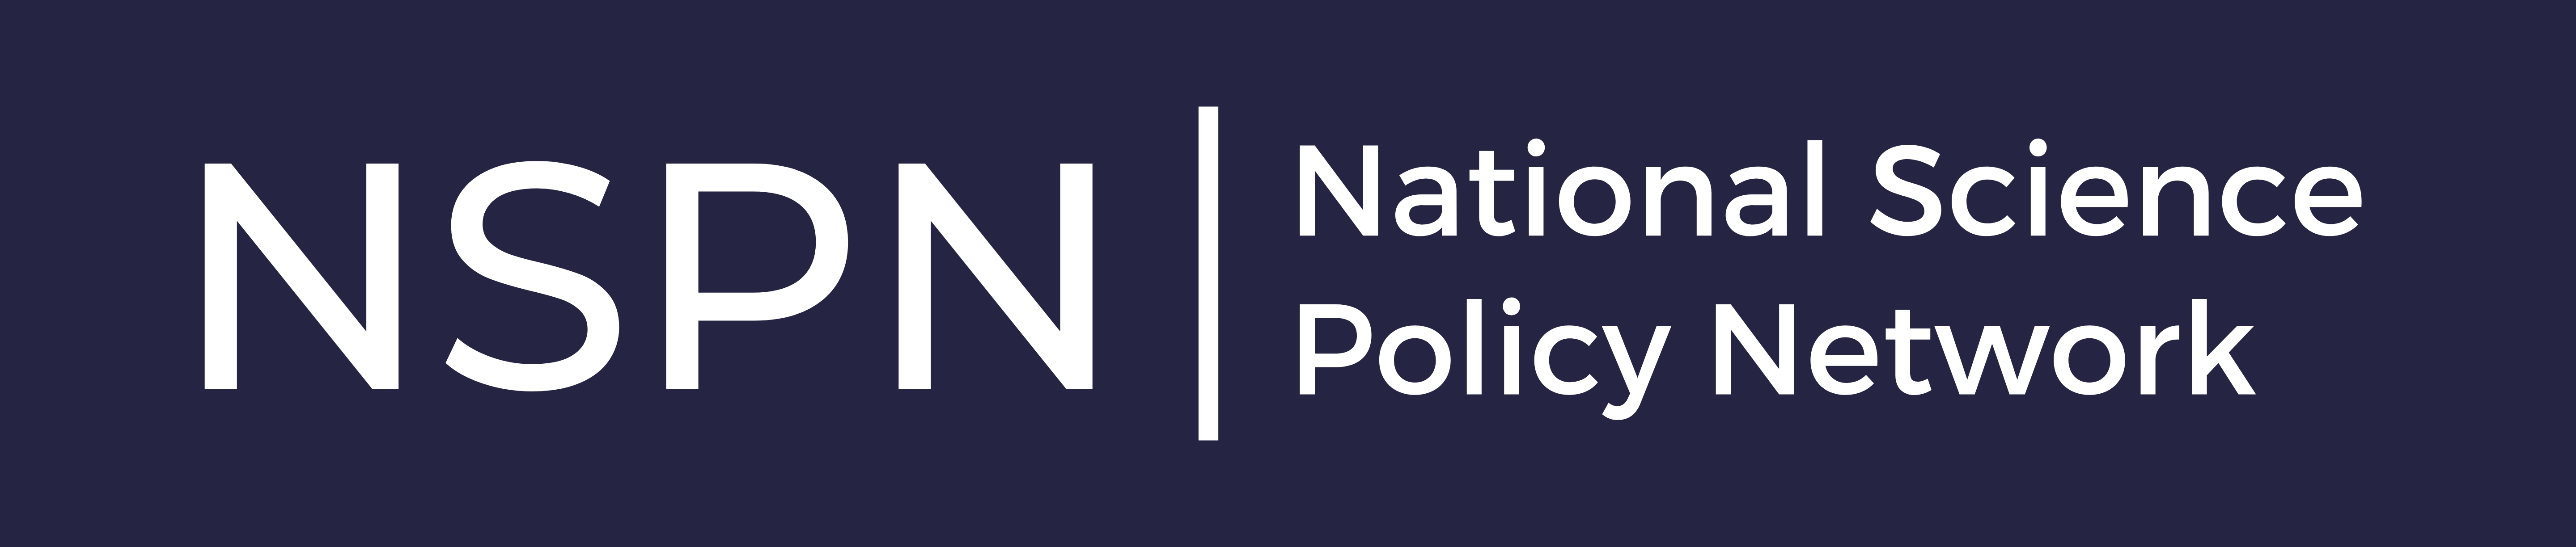 """The logo of the National Science Policy Network (NSPN). On a dark purple background, white text reads: """"National Science Policy Network: NSPN."""""""